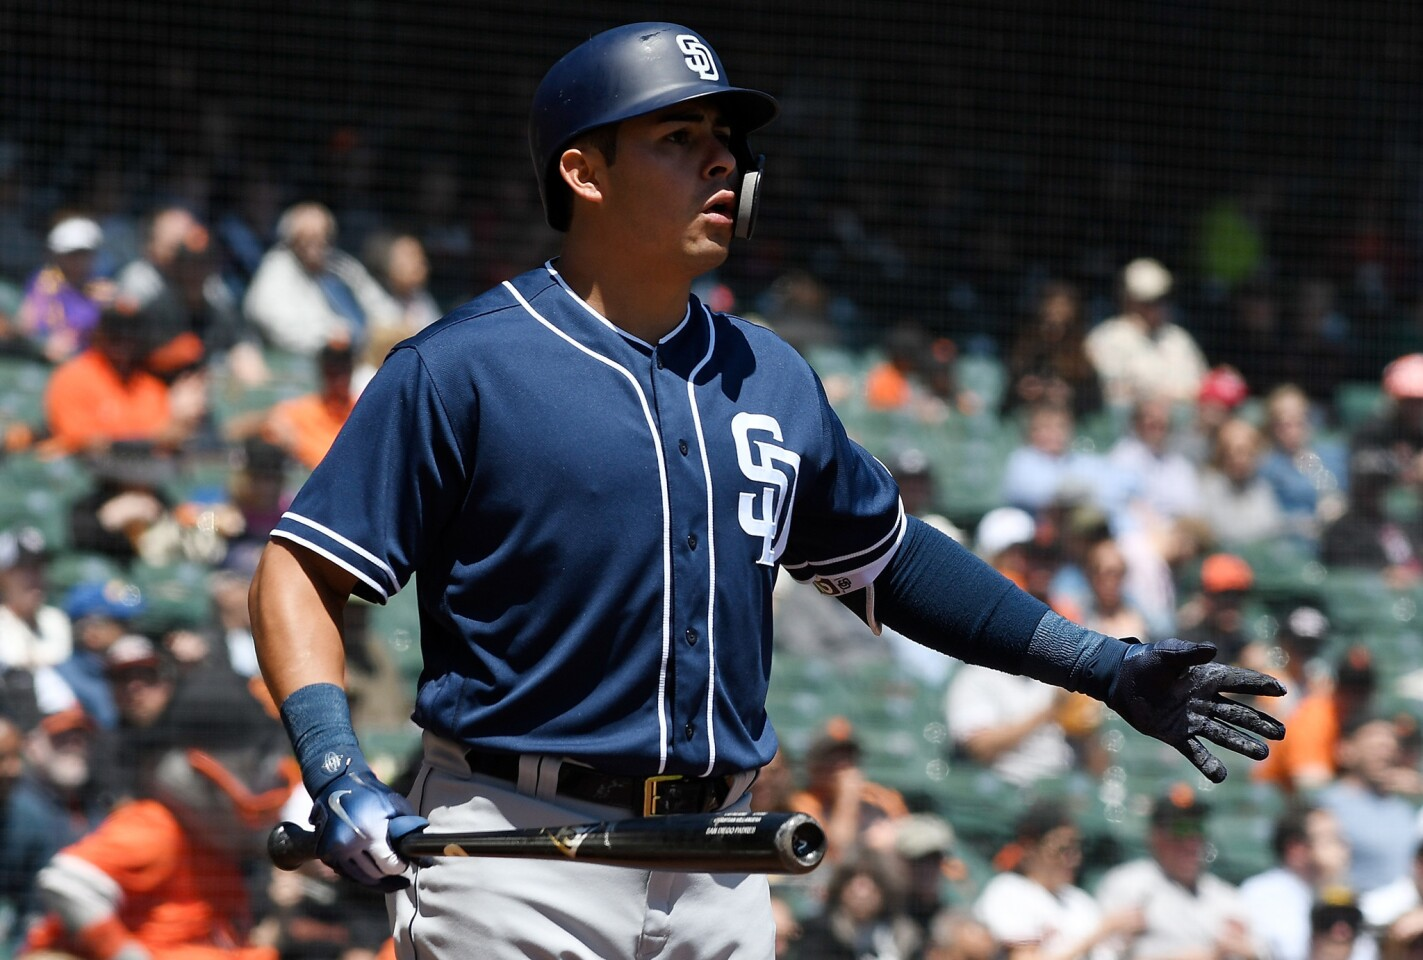 SAN FRANCISCO, CA - MAY 02: Christian Villanueva #22 of the San Diego Padres reacts to being called out on strikes against the San Francisco Giants in the top of the first inning at AT&T Park on May 2, 2018 in San Francisco, California. (Photo by Thearon W. Henderson/Getty Images) ** OUTS - ELSENT, FPG, CM - OUTS * NM, PH, VA if sourced by CT, LA or MoD **